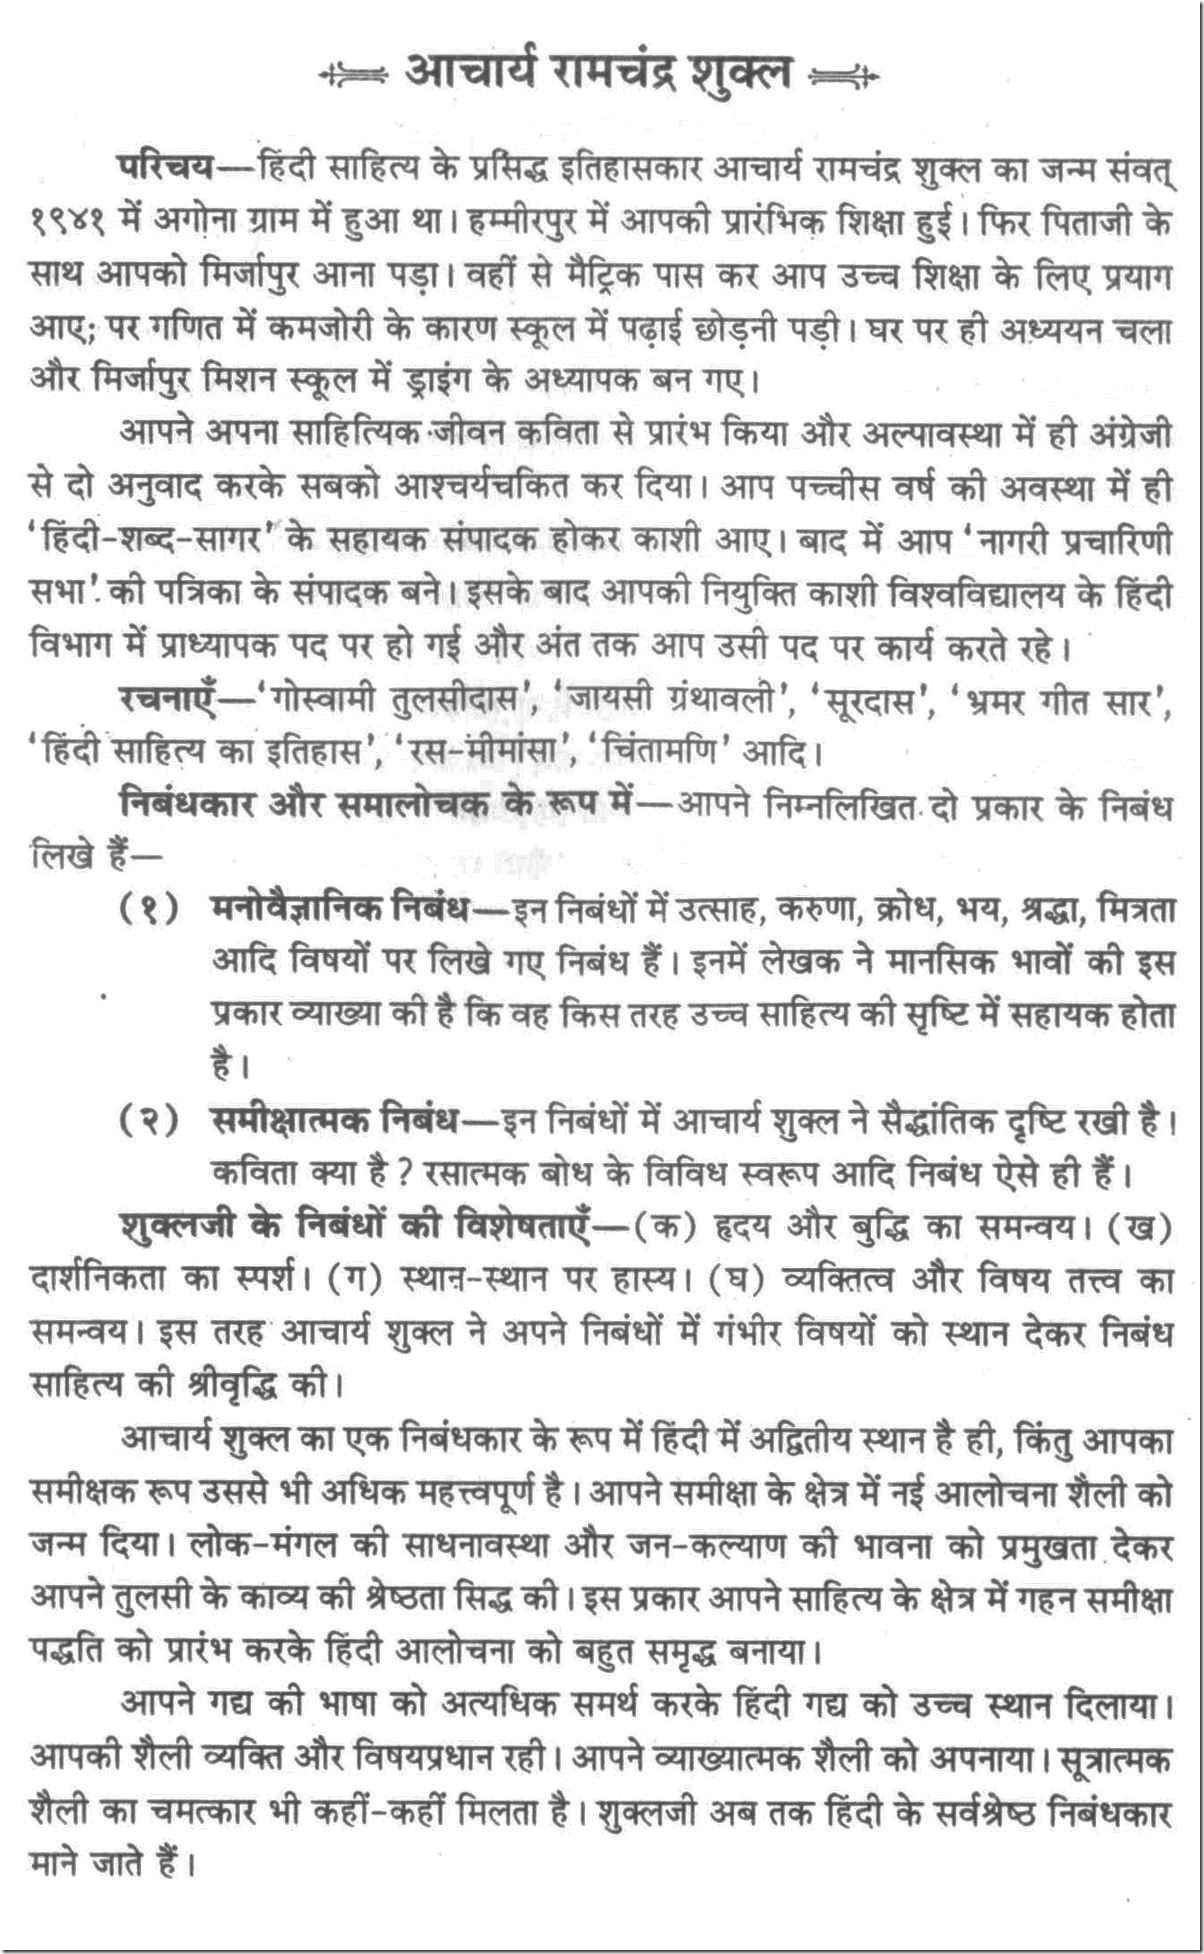 010 Essay On Helping Friend In Trouble 100018 Thumb Excellent A Narrative Hindi Full